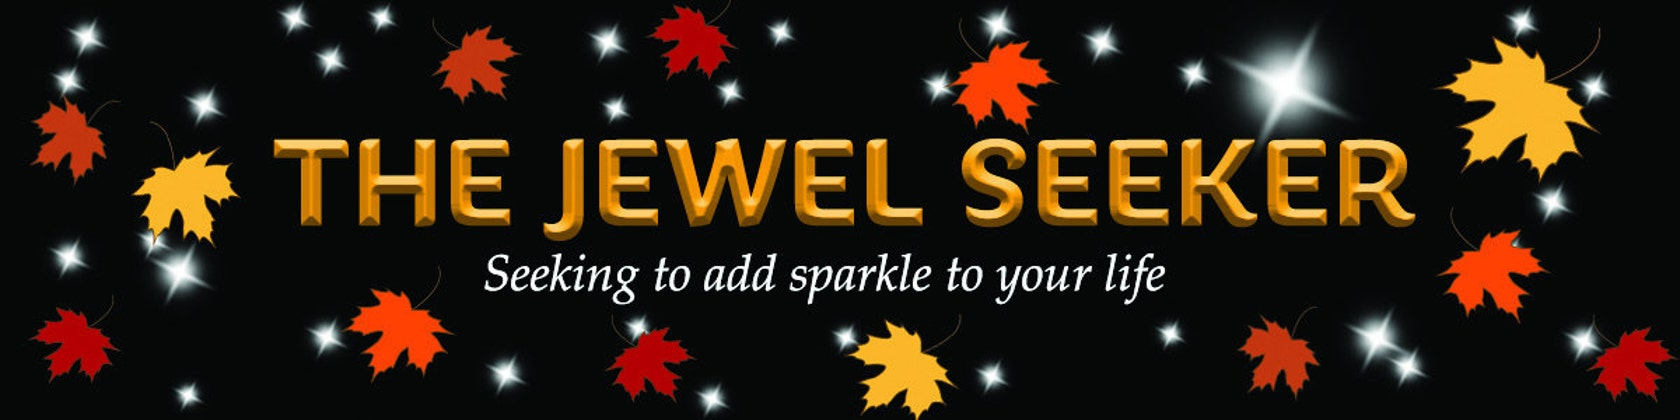 Sparkling Vintage Jewelry Fashion & Vanity Items by thejewelseeker